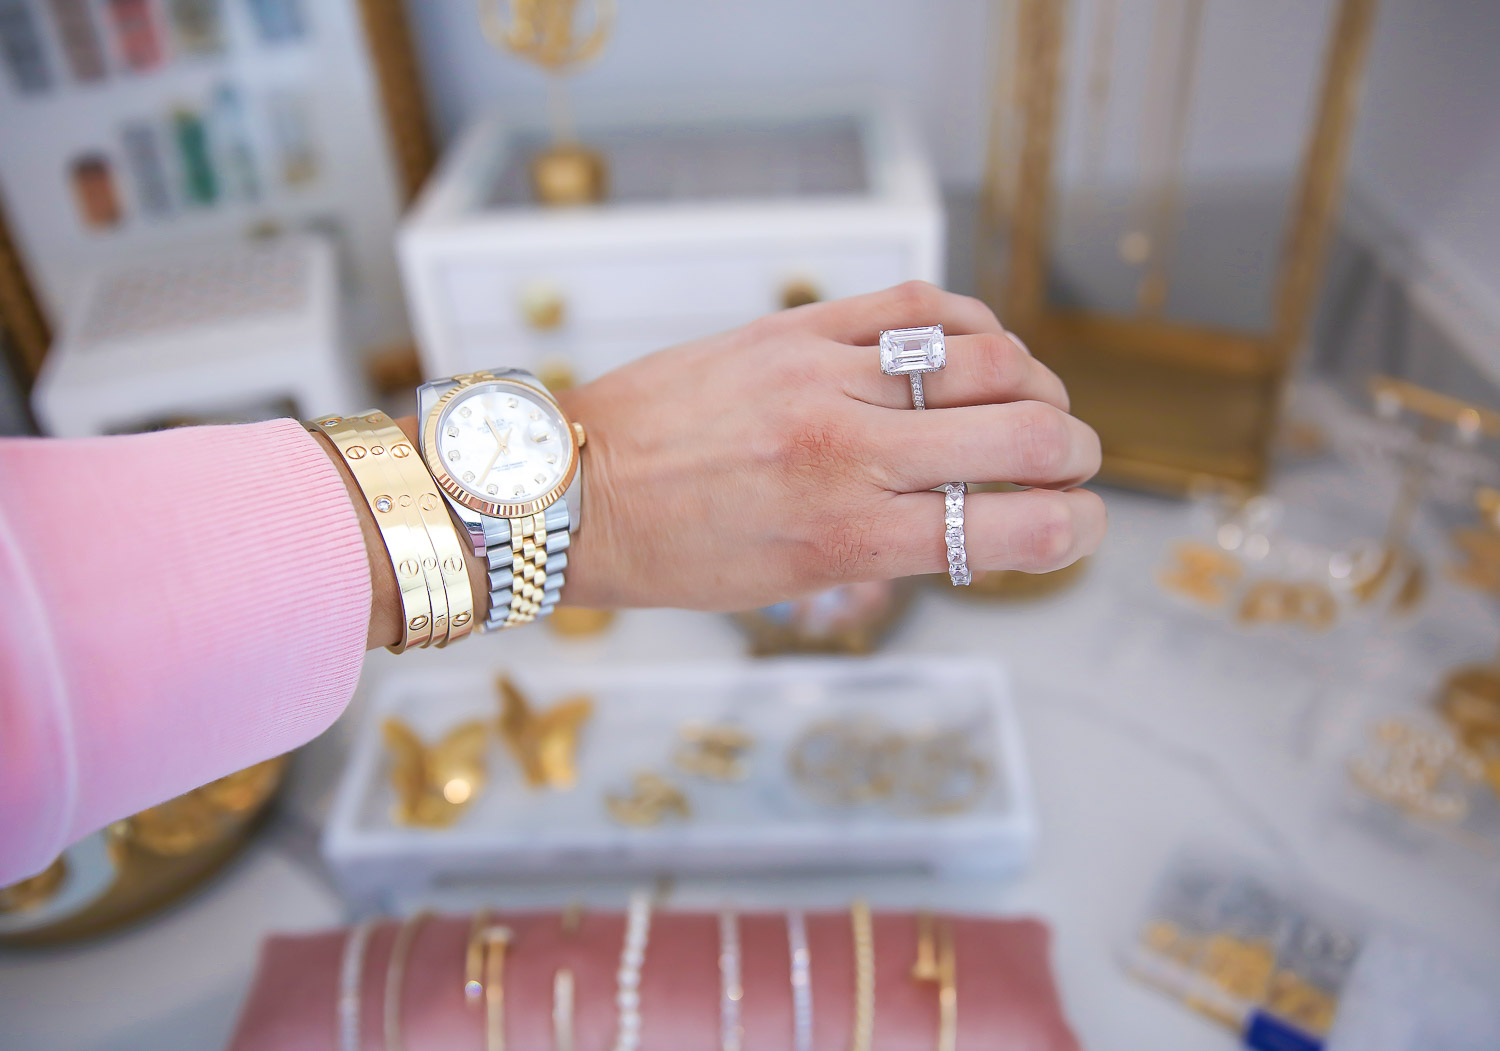 Amazon must haves blog posts, amazon jewelry engagement rings, Rolex date just, Emily Gemma amazon, |Amazon Must Haves by popular US life and style blog, The Sweetest Thing: image of Emily Gemma wearing a Rolex watch, Emerald cushion cut ring, and emerald cut eternity band.